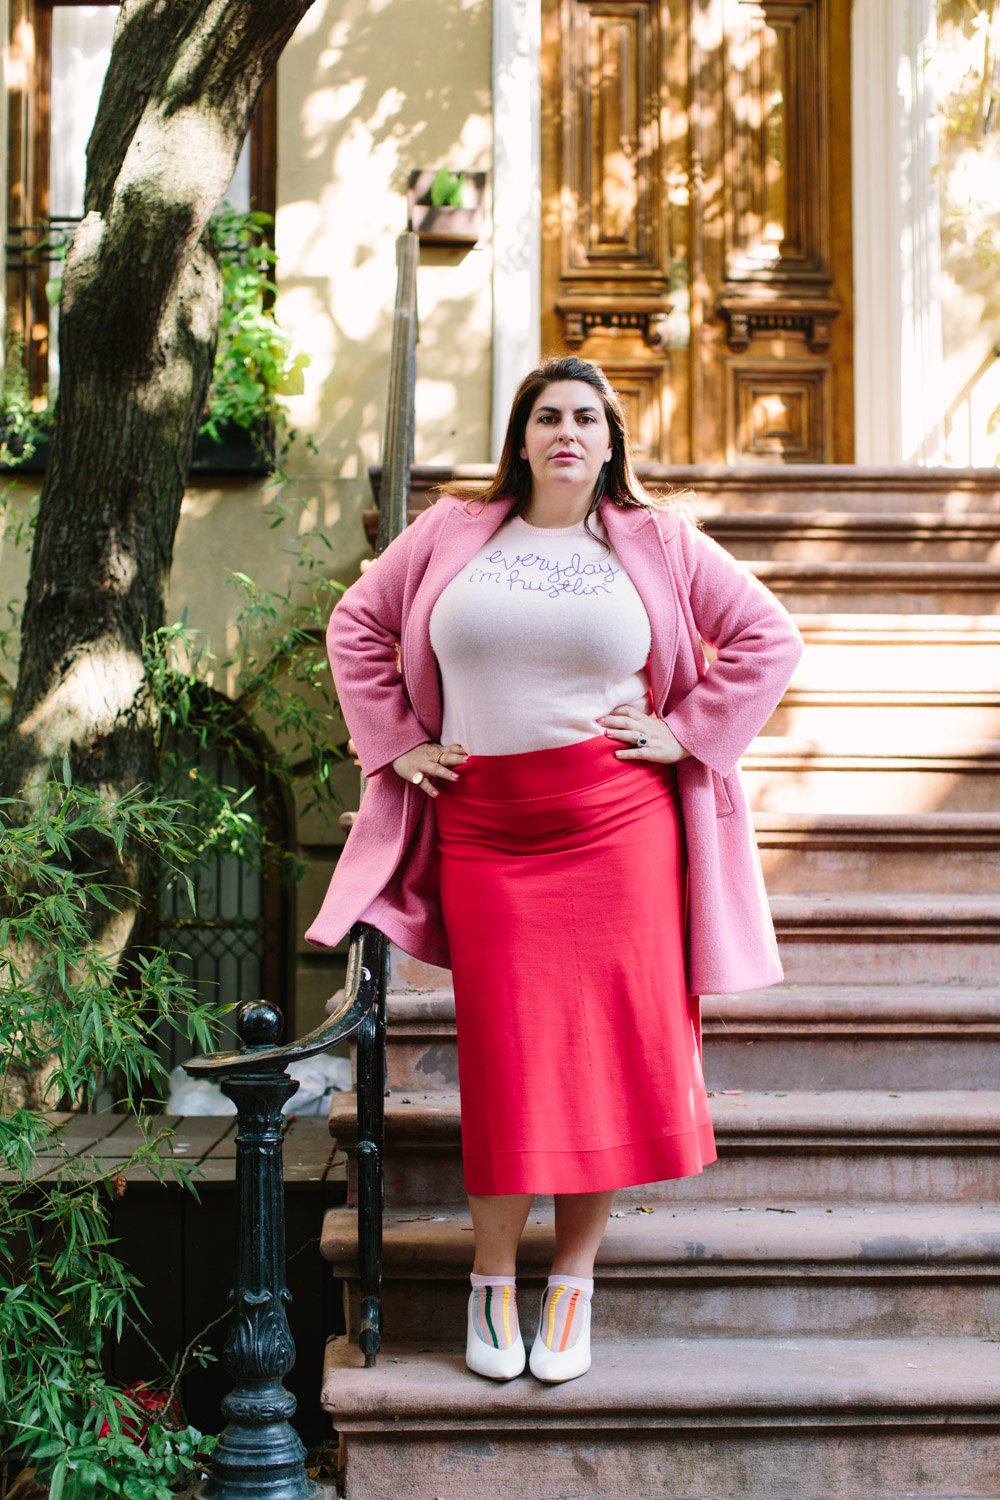 A Week of Outfits: Katie Sturino